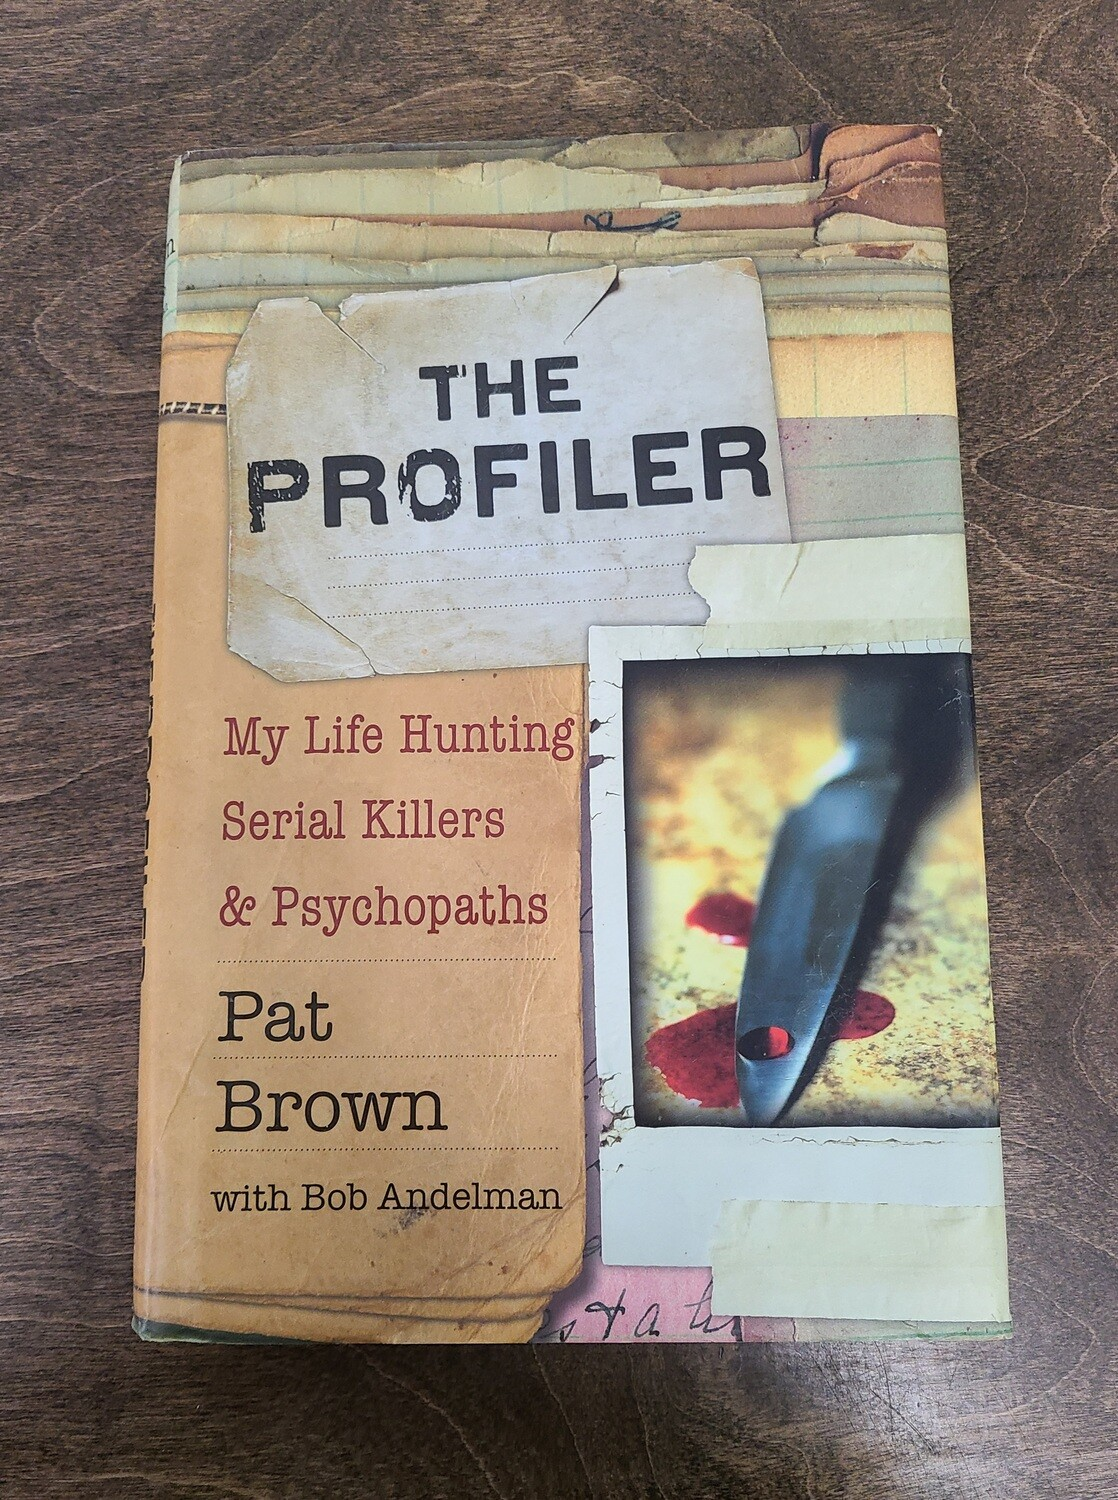 The Profiler by Pat Brown with Bob Andelman